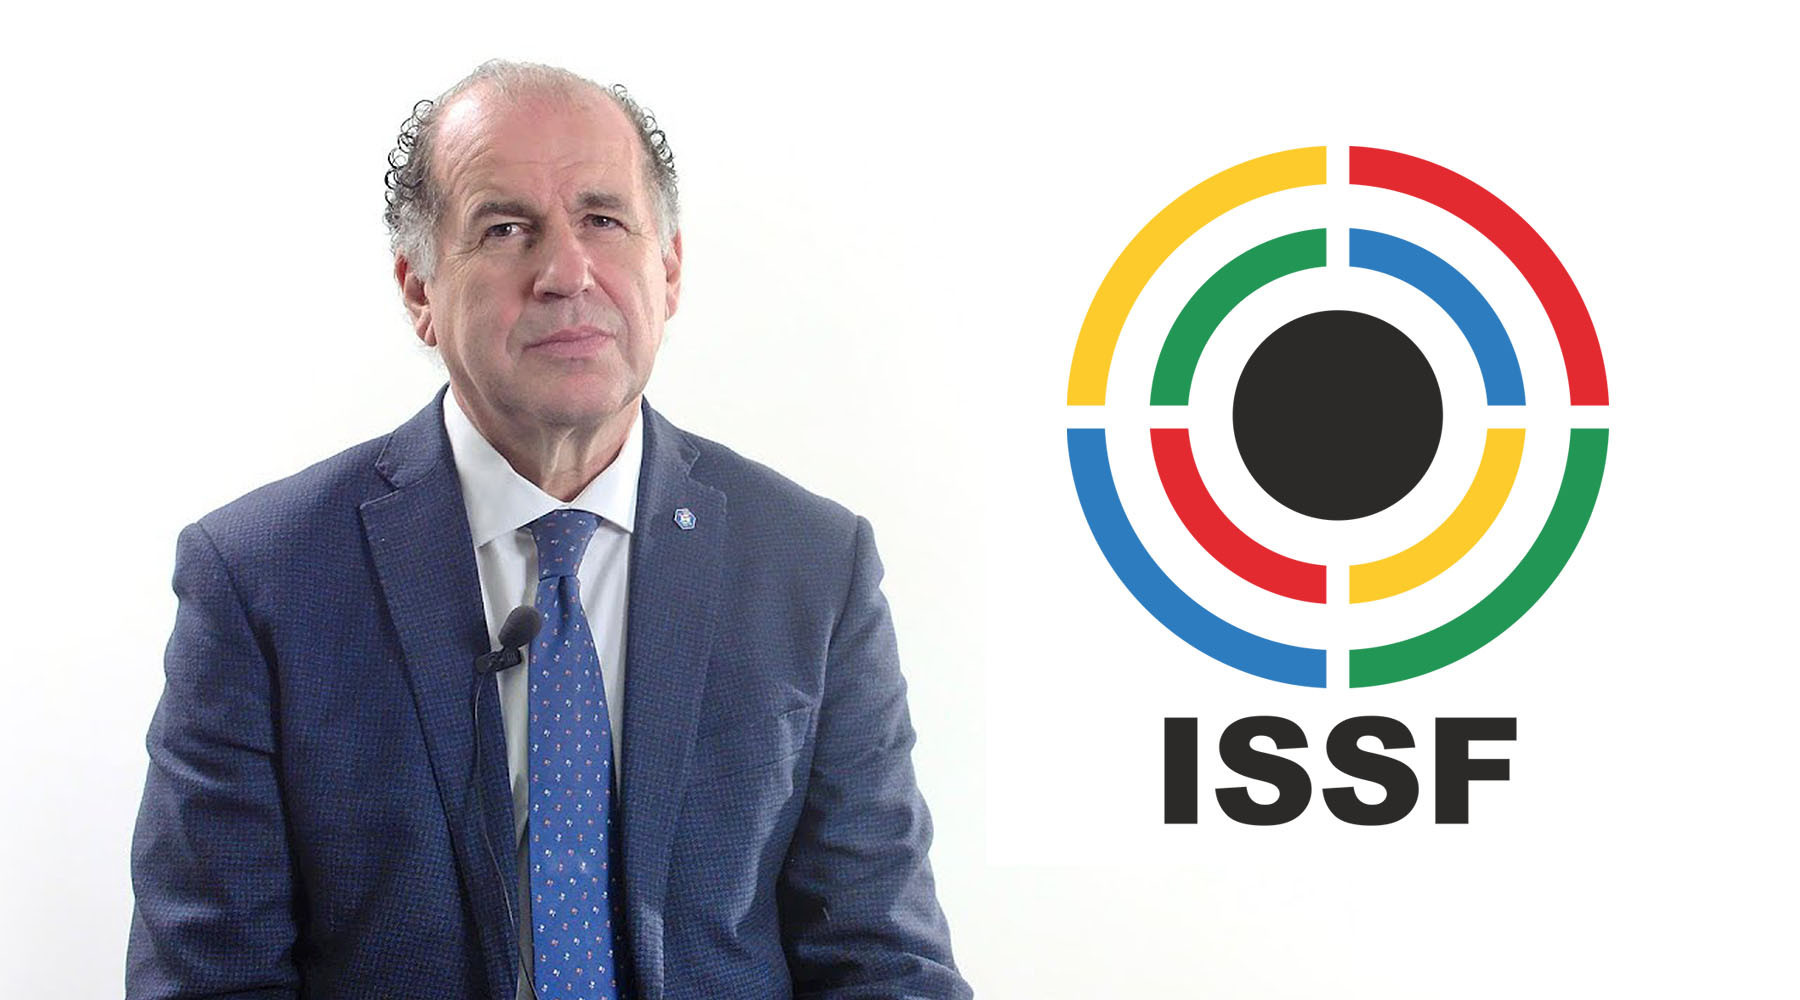 Luciano Rossi, who is standing to become the new President of the International Shooting Sport Federation, claims to have received a death threat ©ISSF